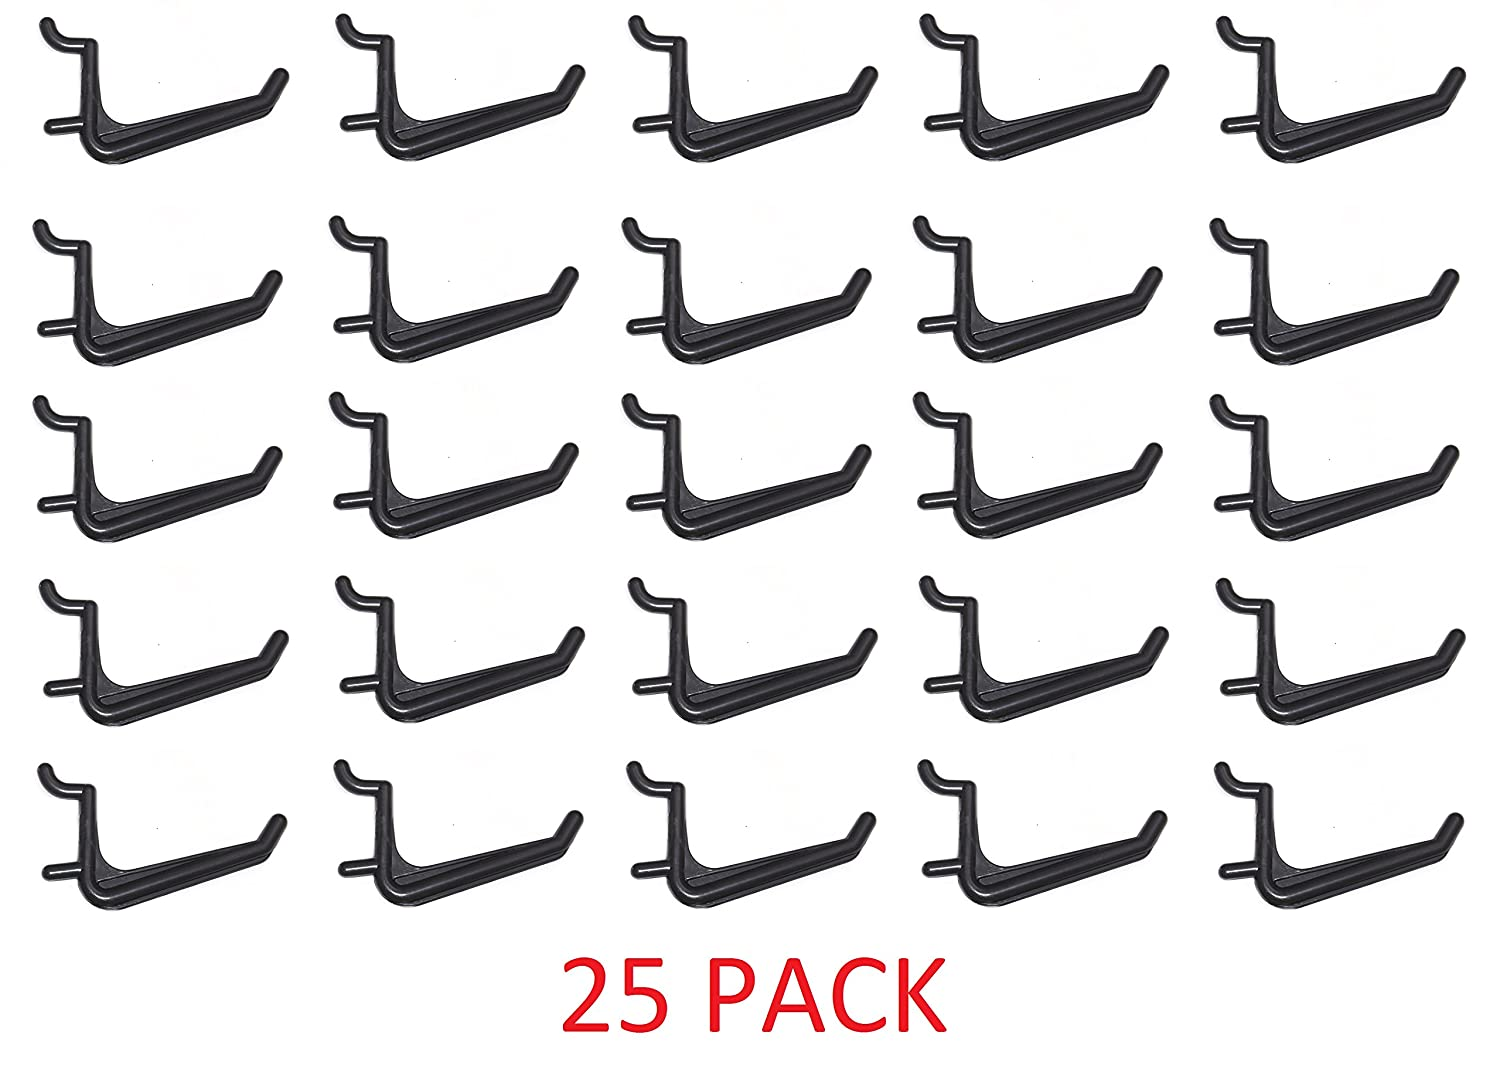 25 Pack Of JUMBO Pegboard Hooks Black Garage Tools Hammer Air Tool Storage Organization Jewelry JSP Manufacturing